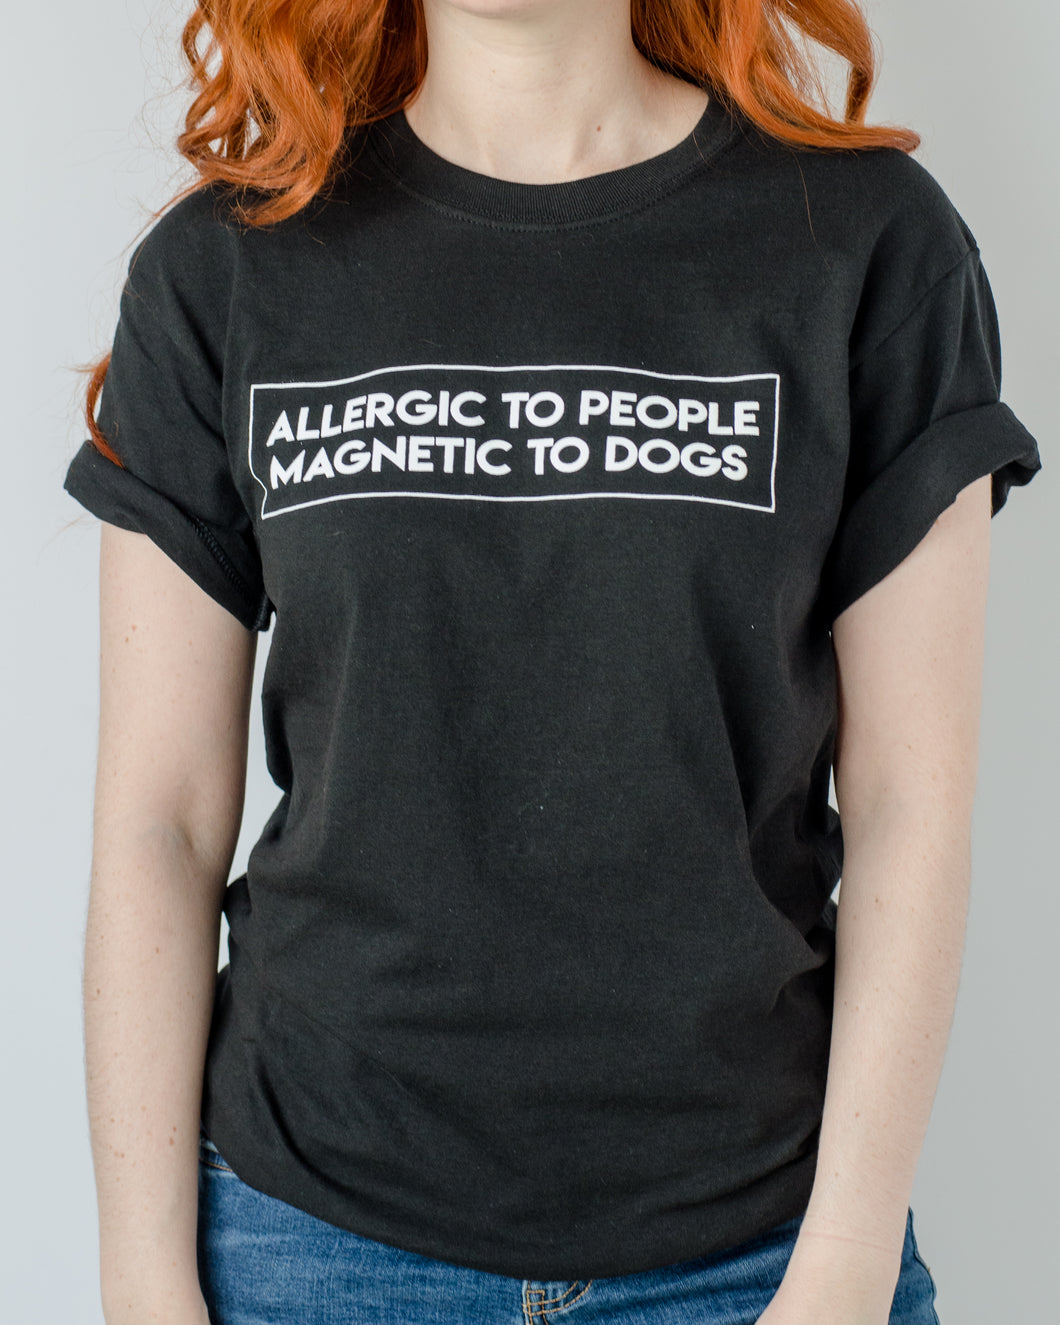 Allergic To People Magnetic To Dogs T-Shirt